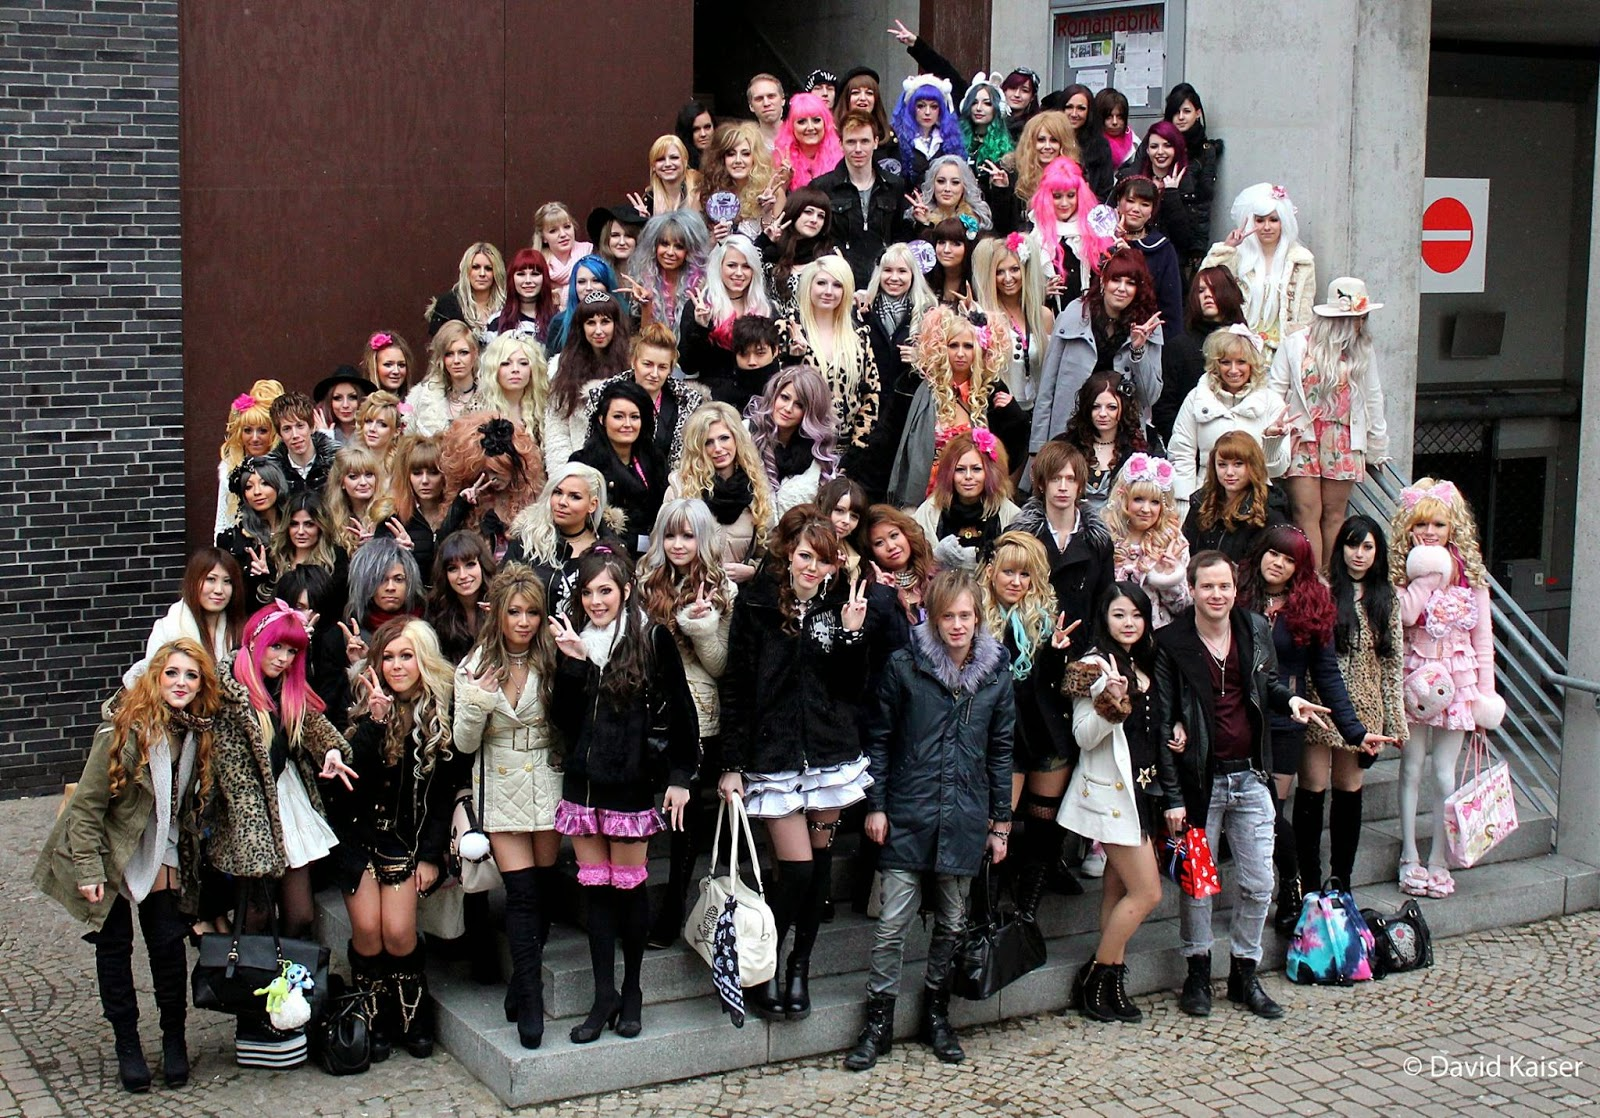 gyaru meetup fashion group